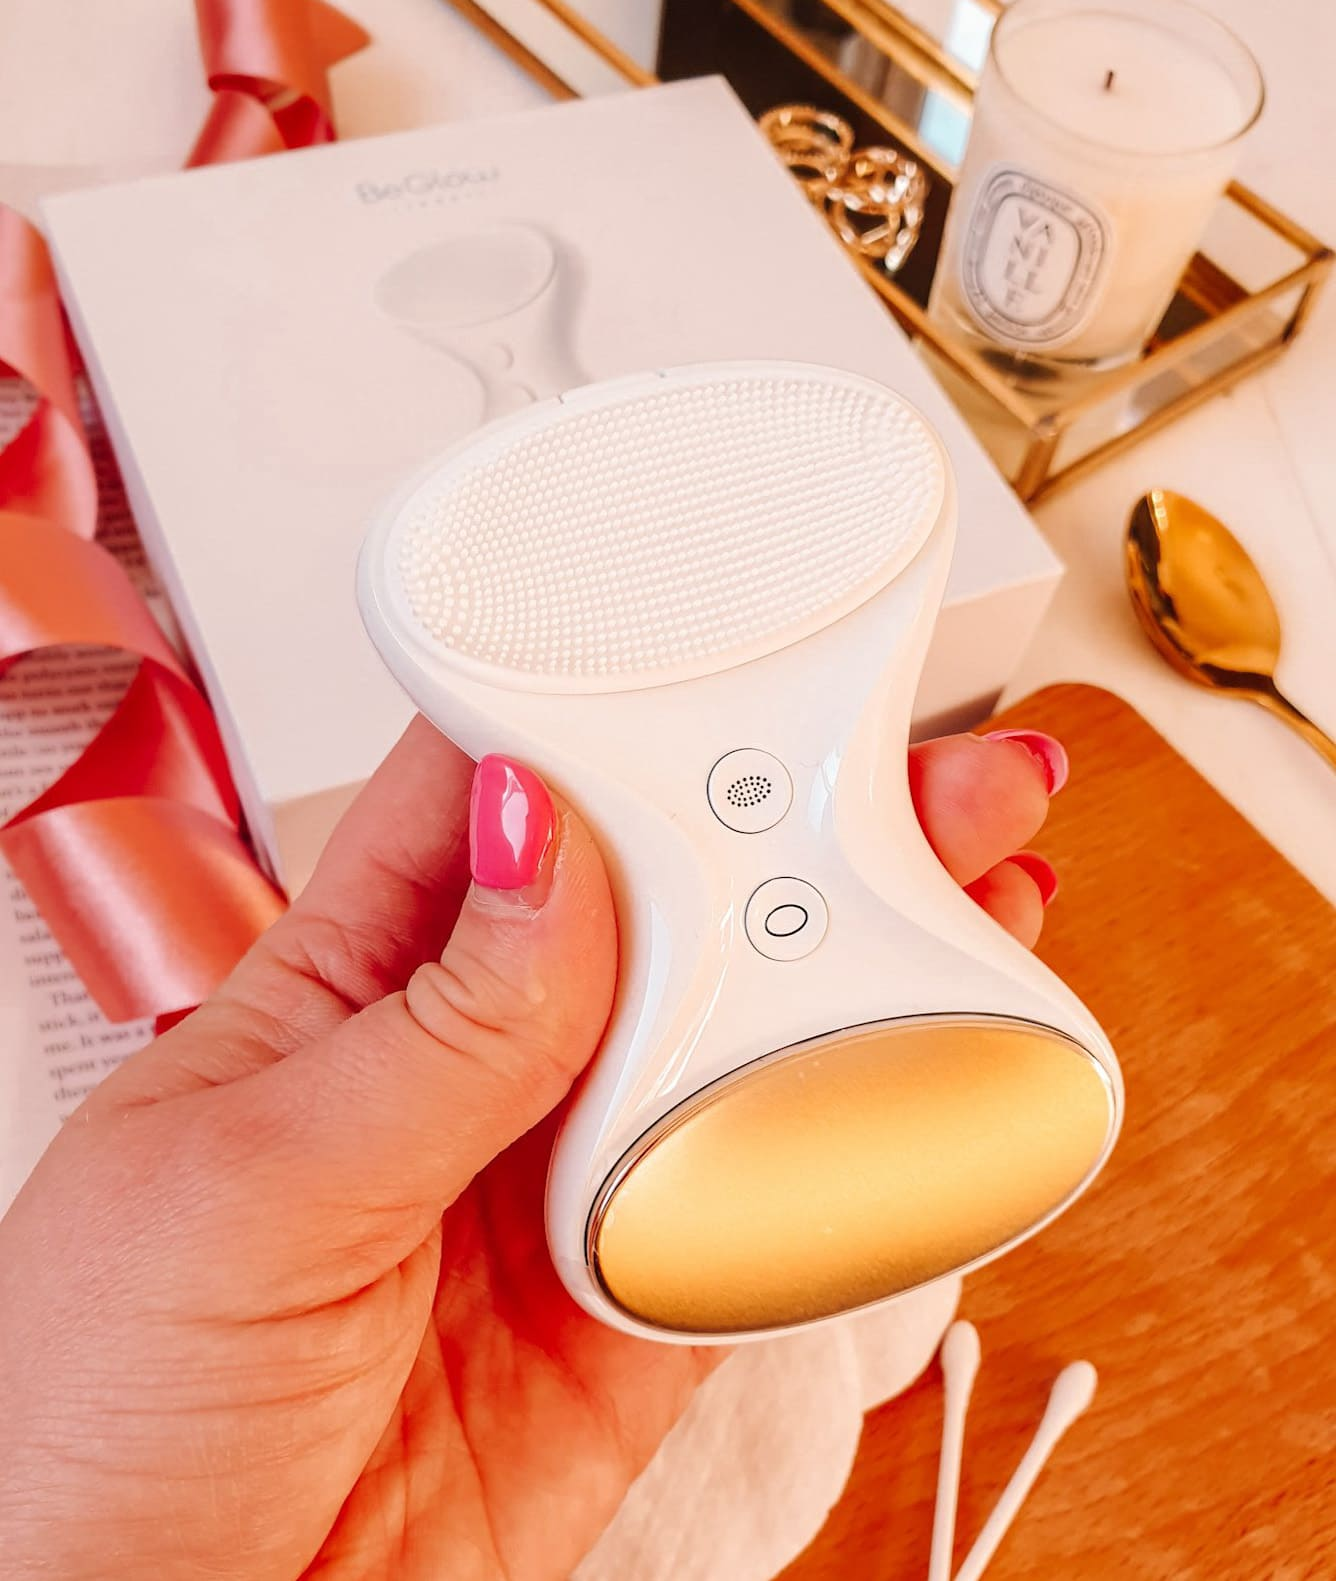 BeGlow TIA All-In-One Sonic Skin Care System in hand close up